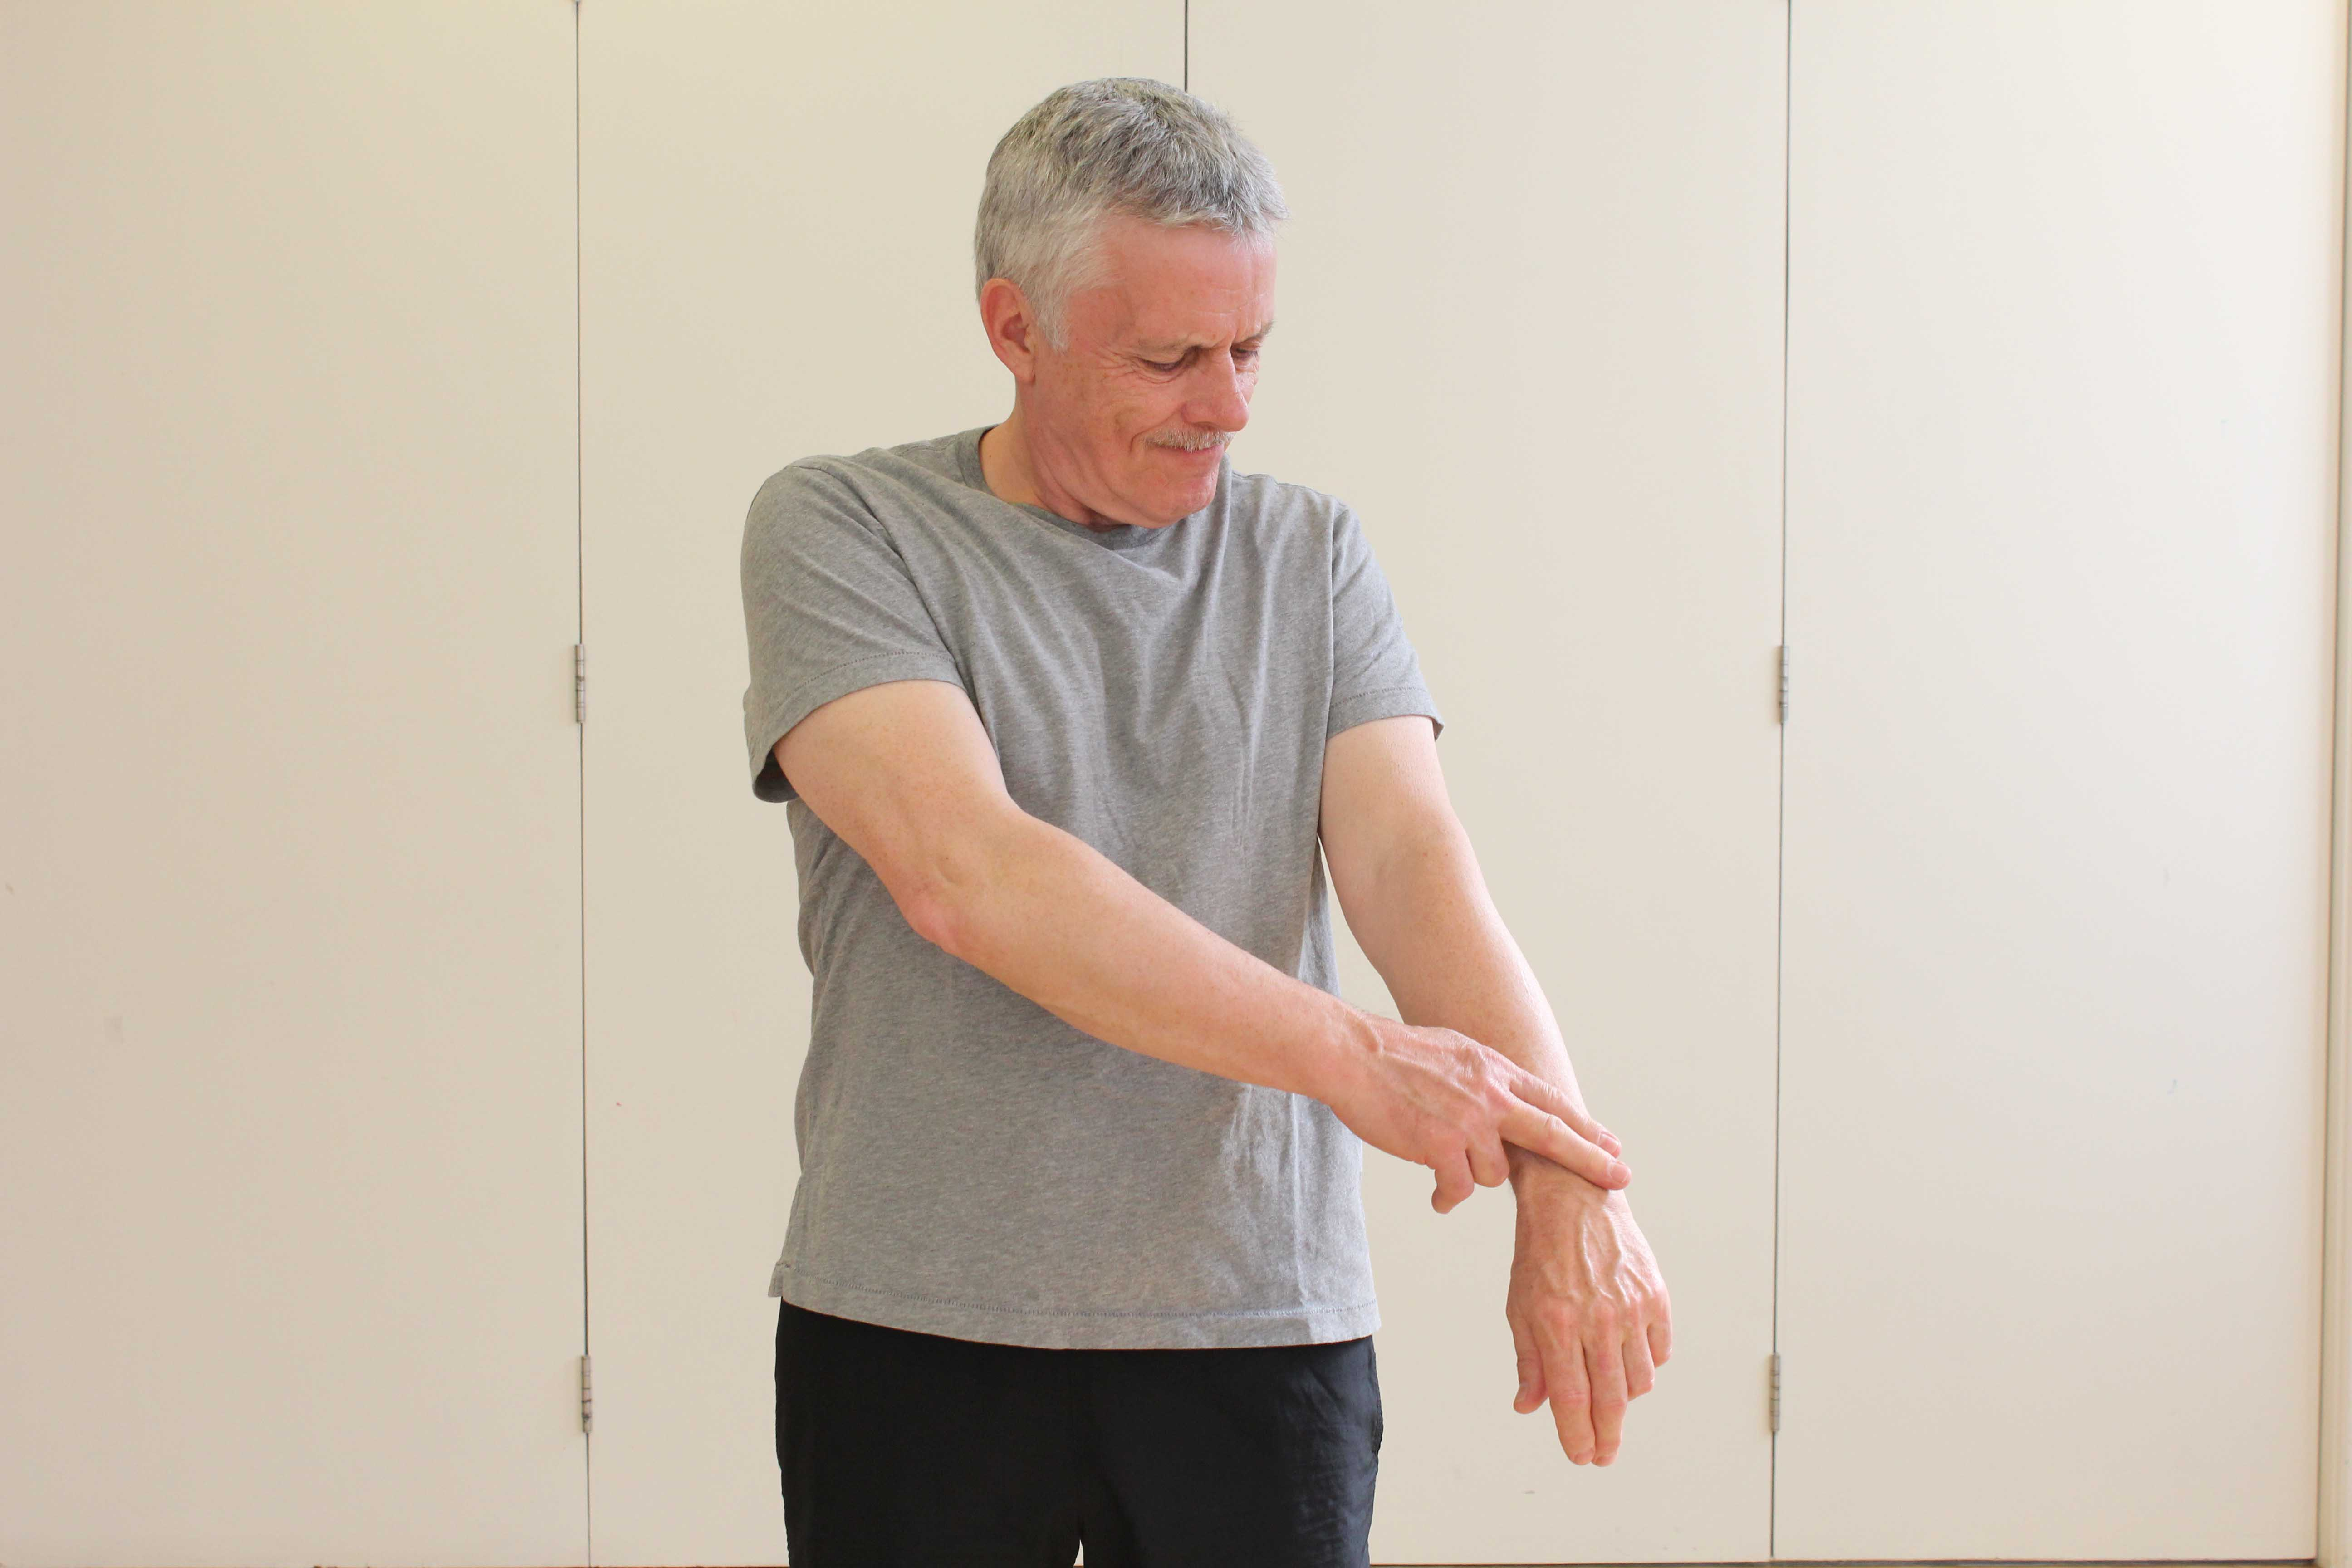 If you suspect you may have injured your wrist, book in to see one of our physiotherapists.